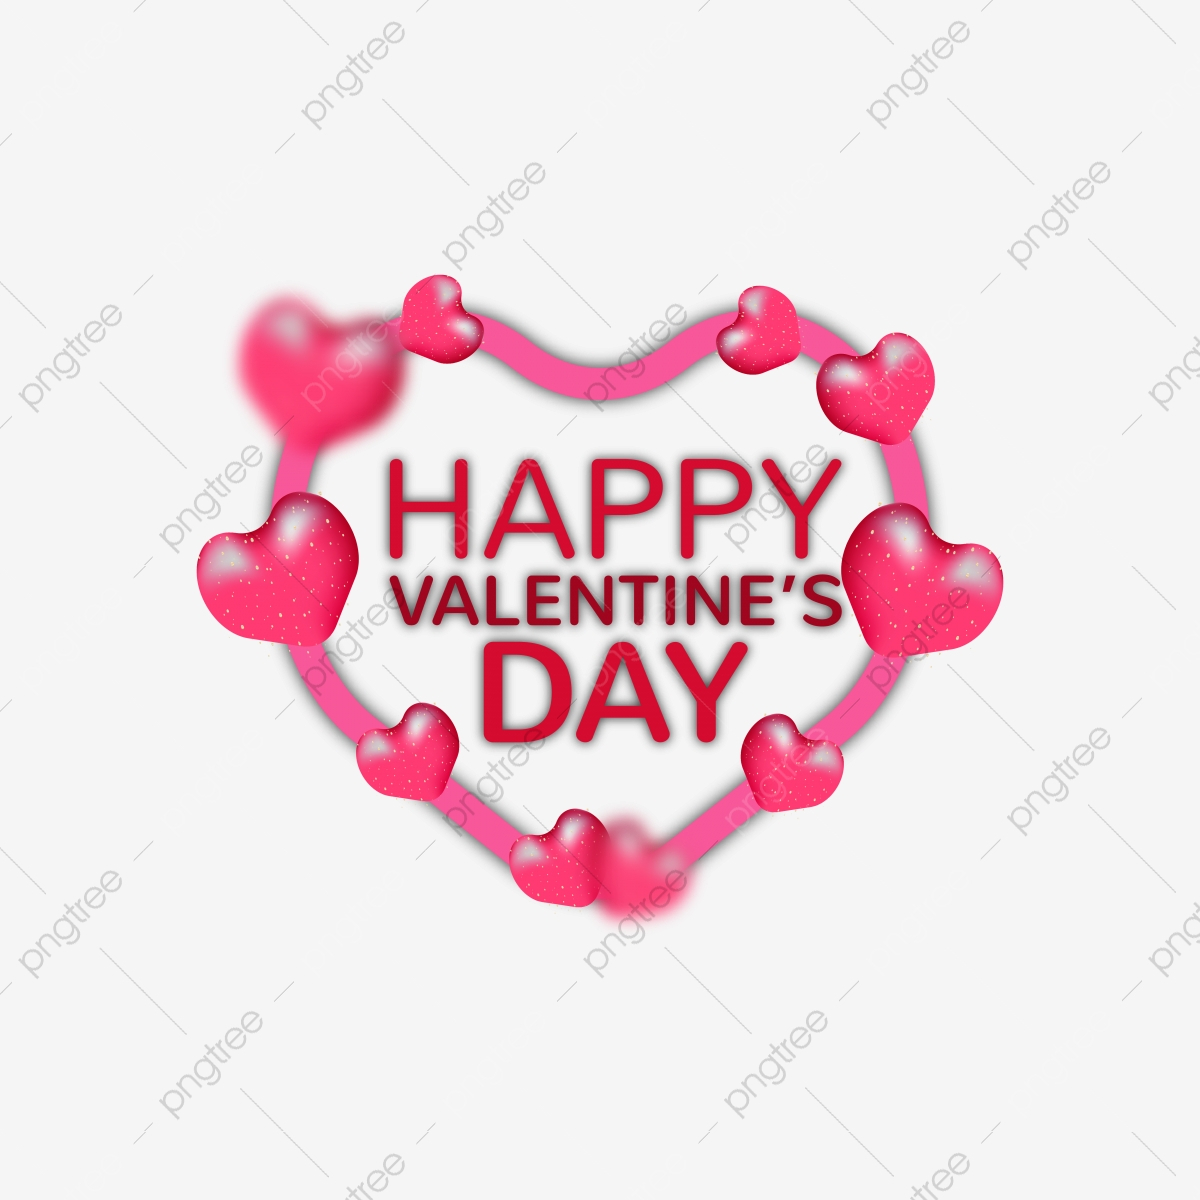 pngtree happy valentines day transparent background with love shape png image